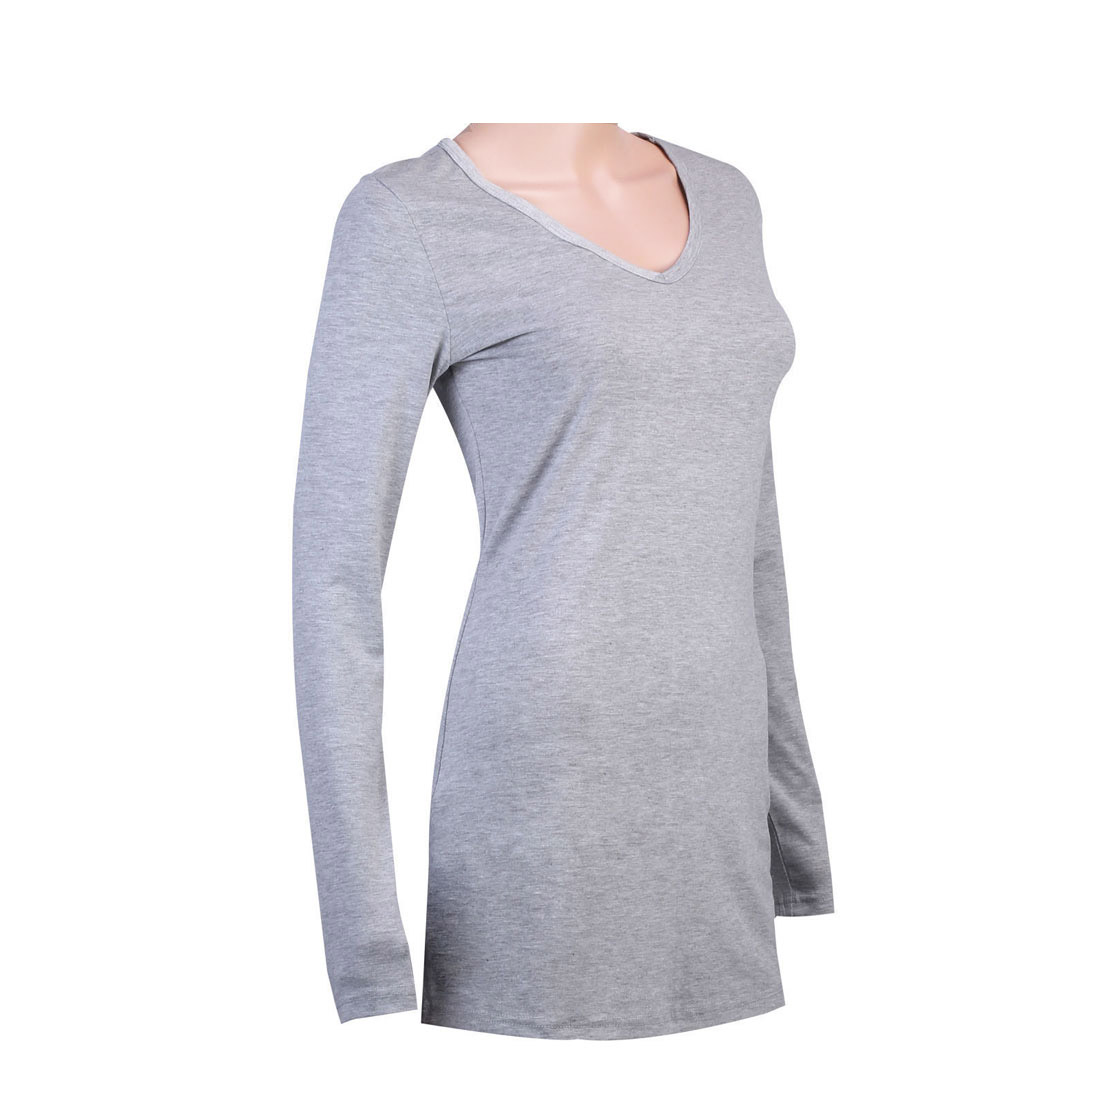 Womens 100 pure cotton long sleeve plain shirts t shirt for Women s 100 cotton long sleeve tee shirts